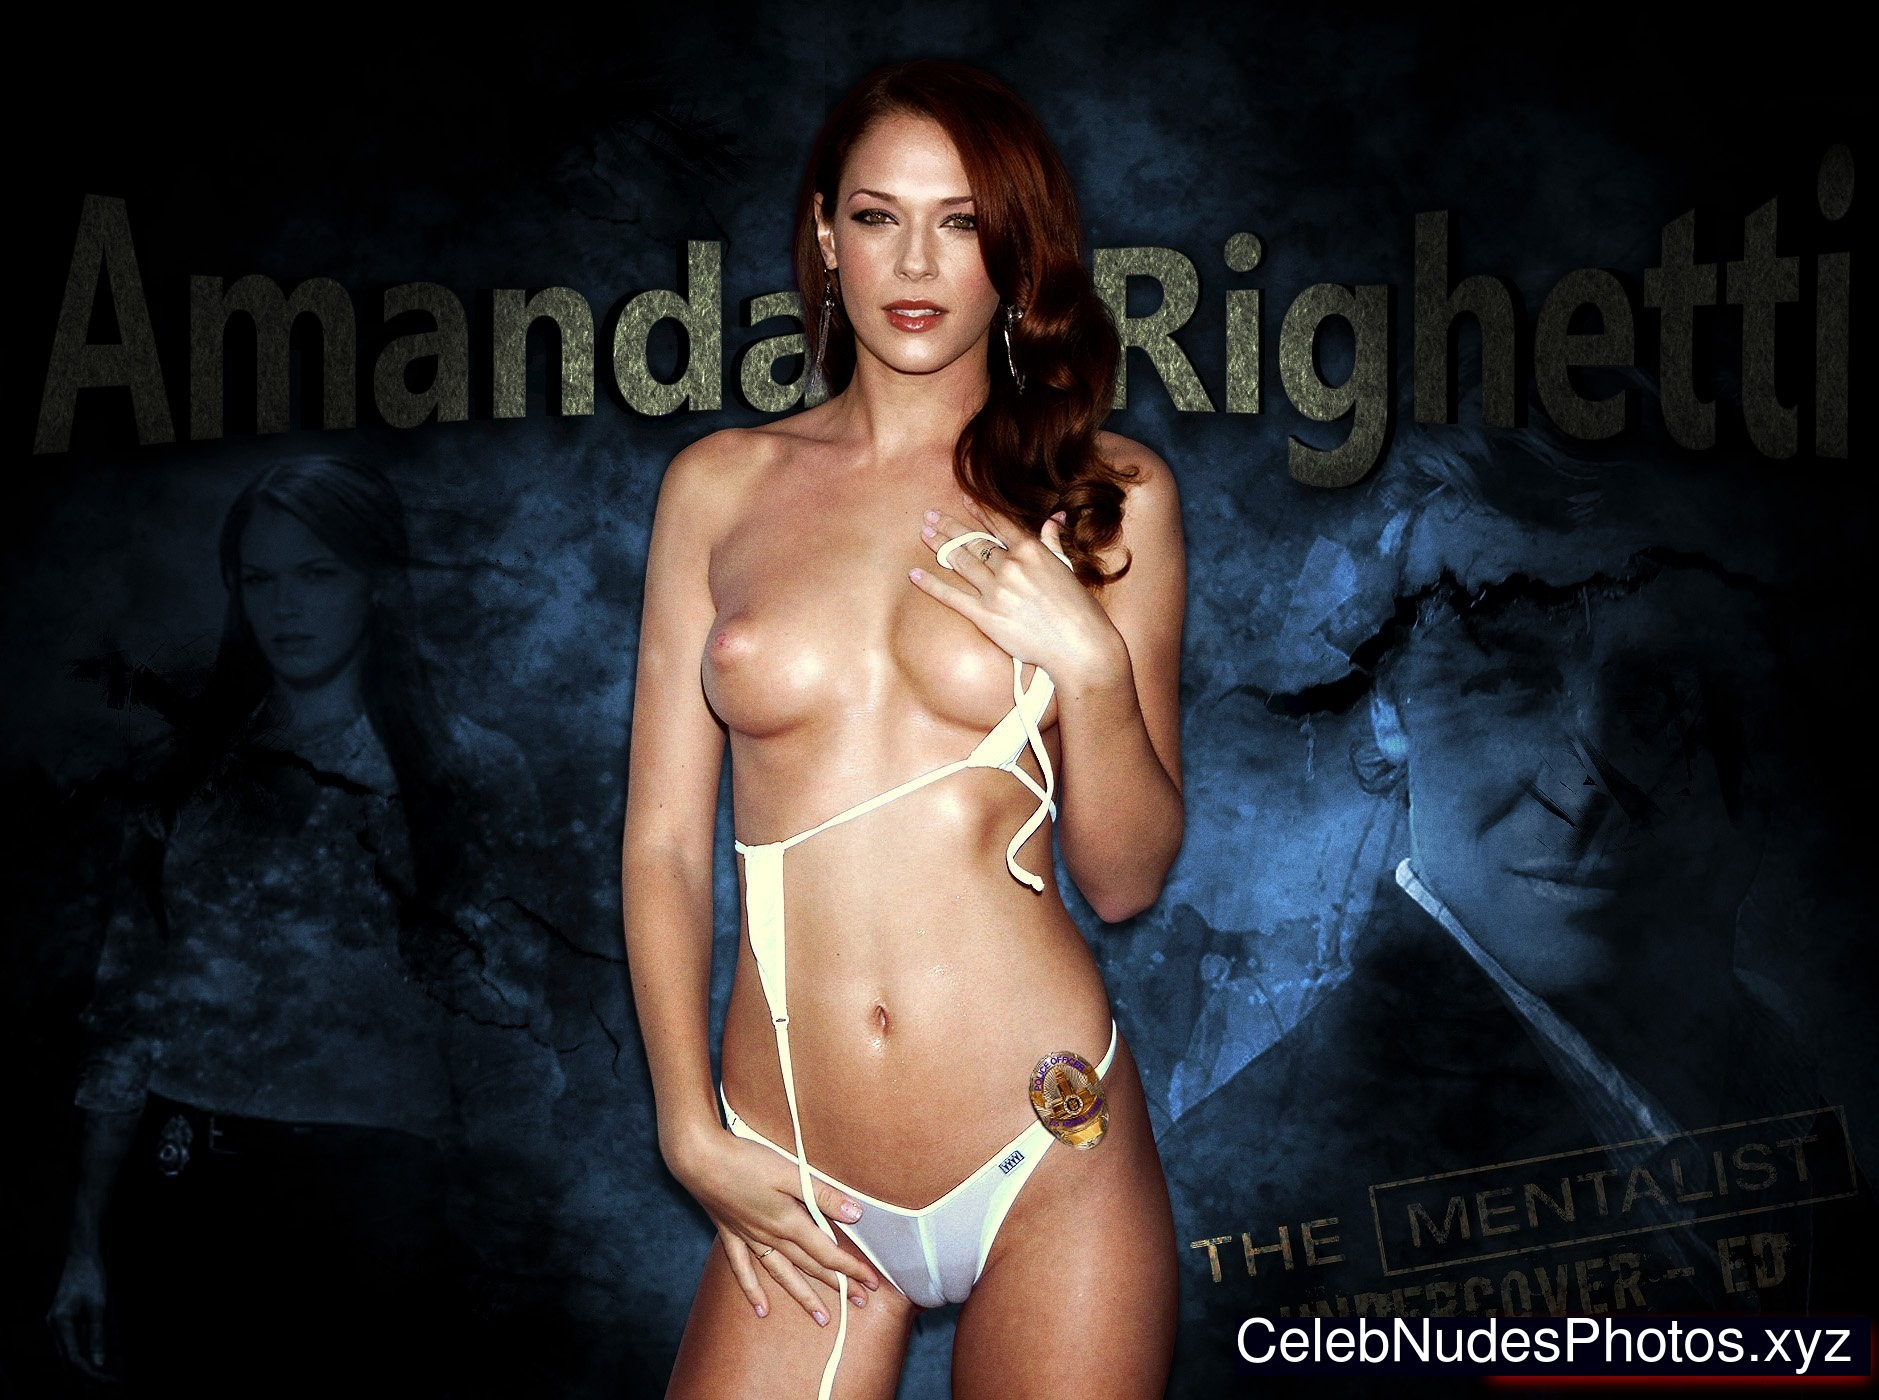 amanda naked righetti